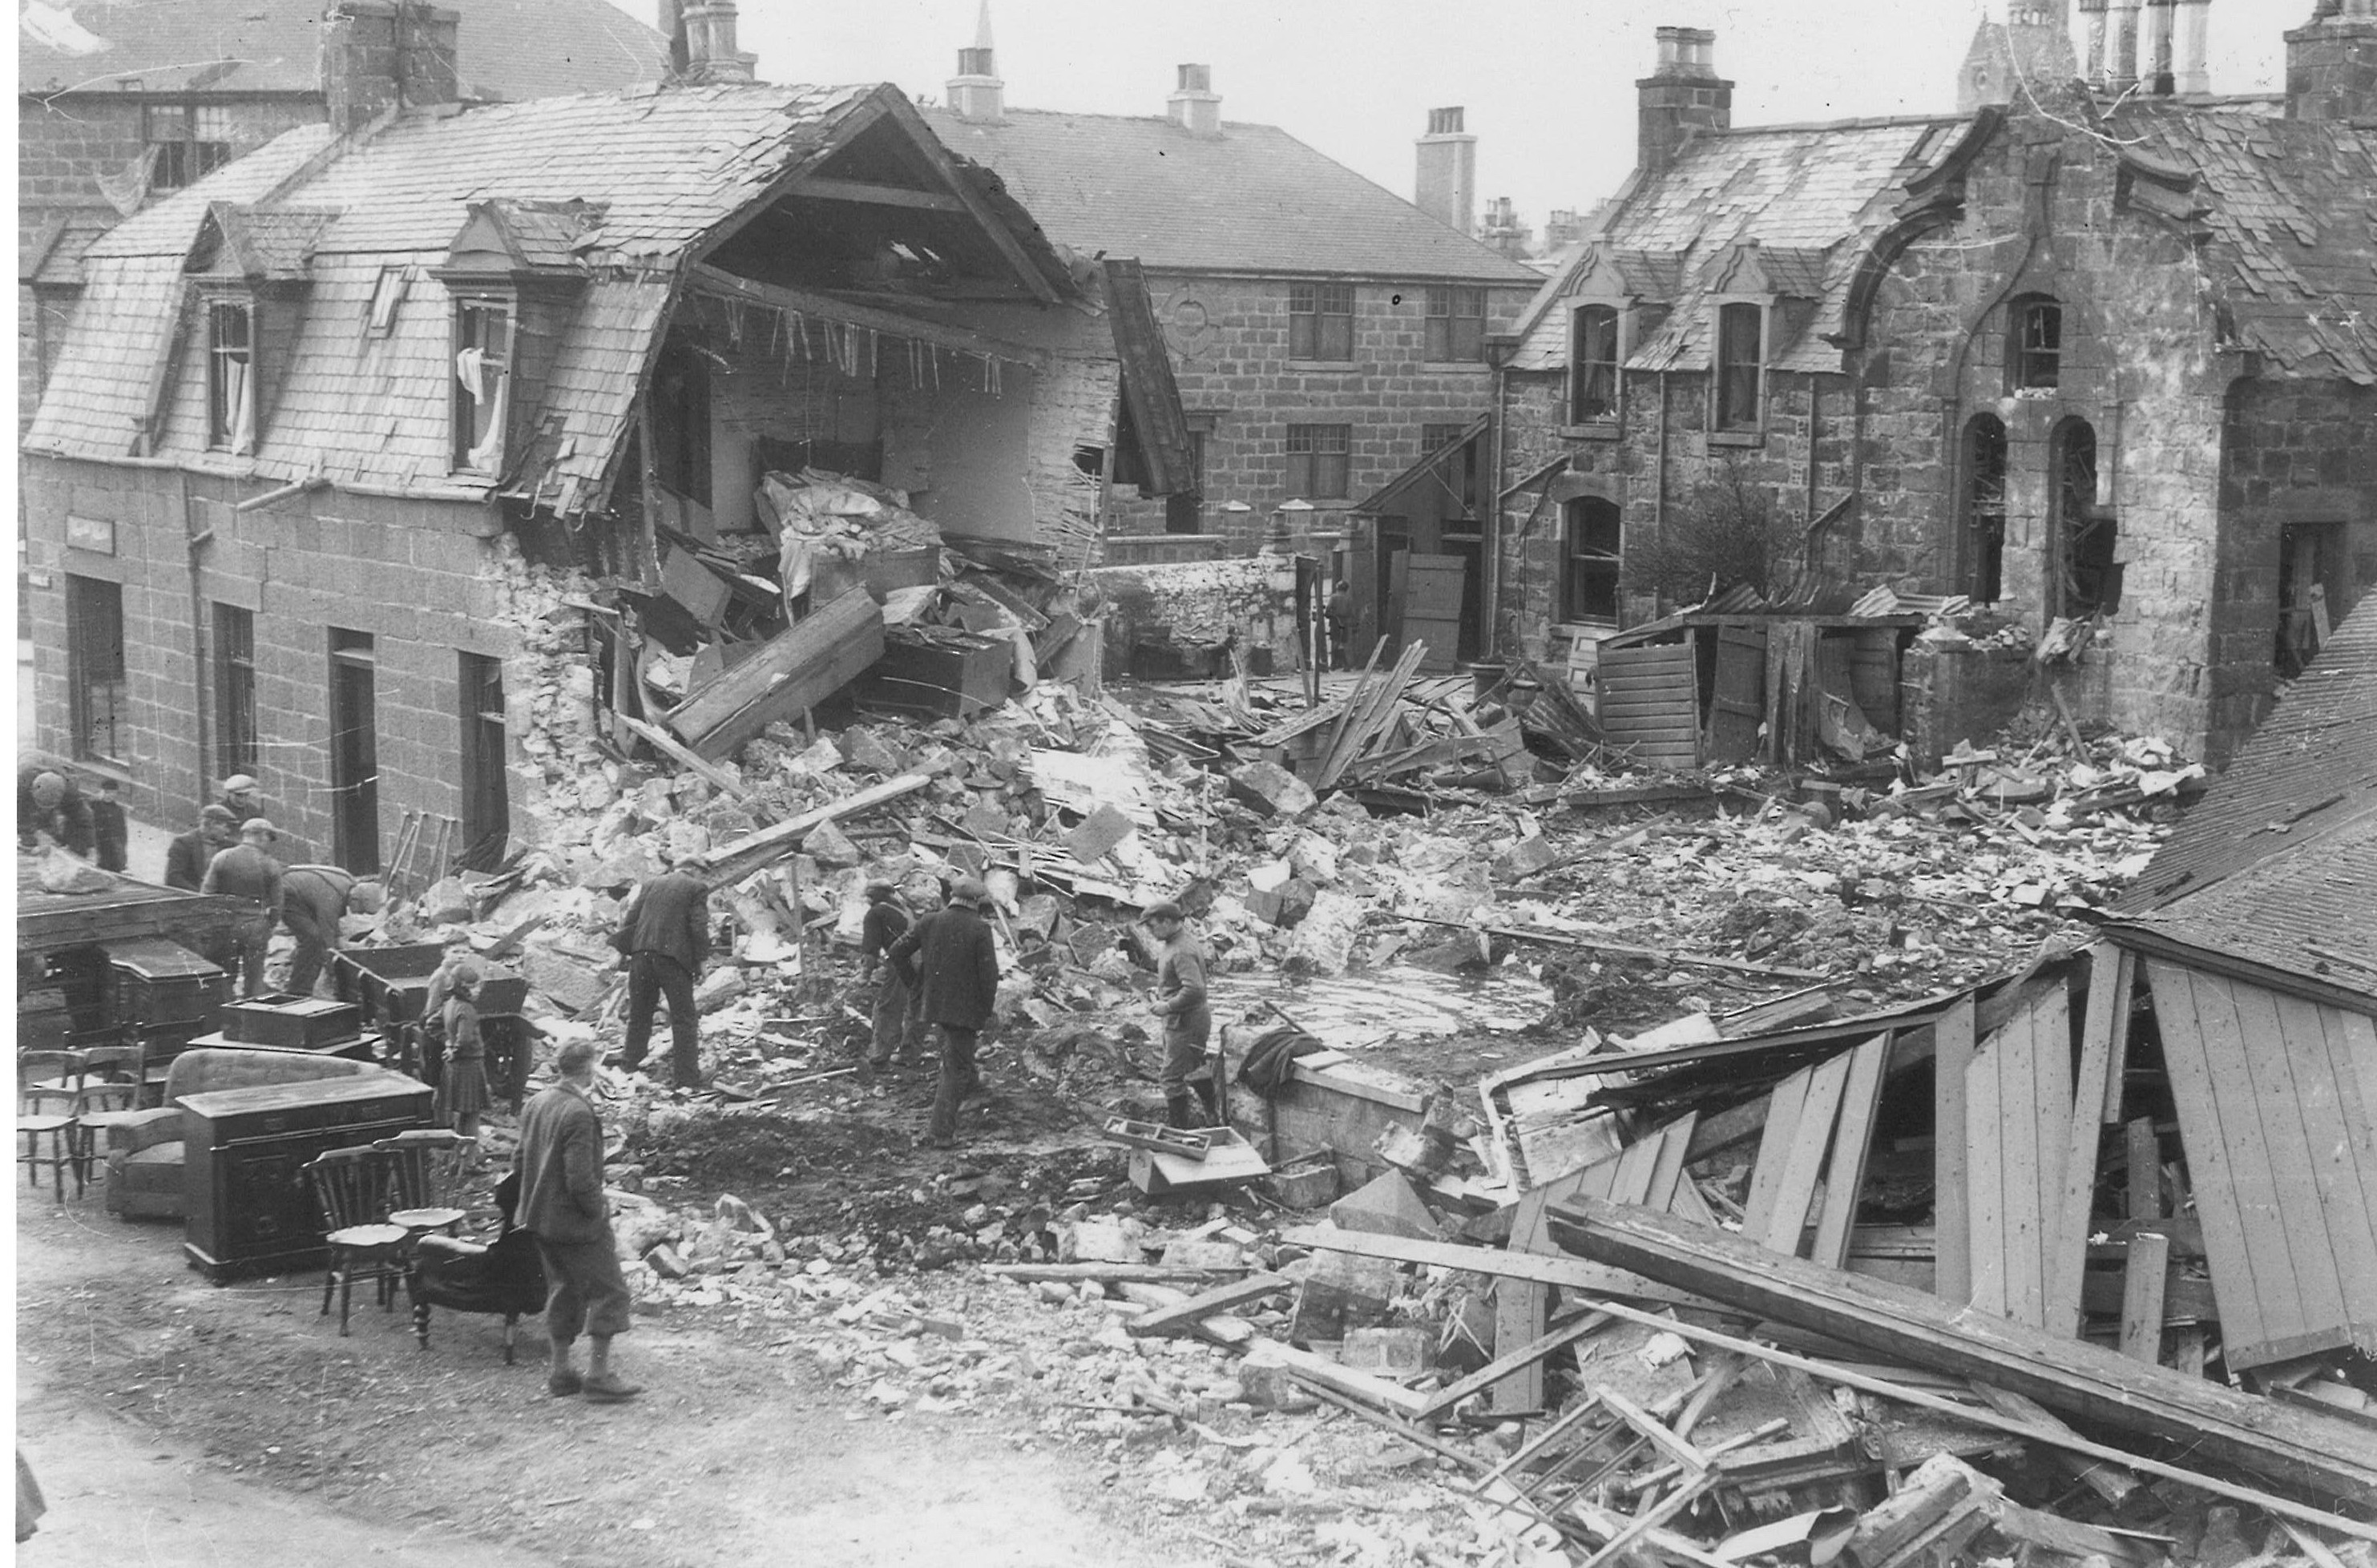 Bomb damage in Fraserburgh, 20 February 1943